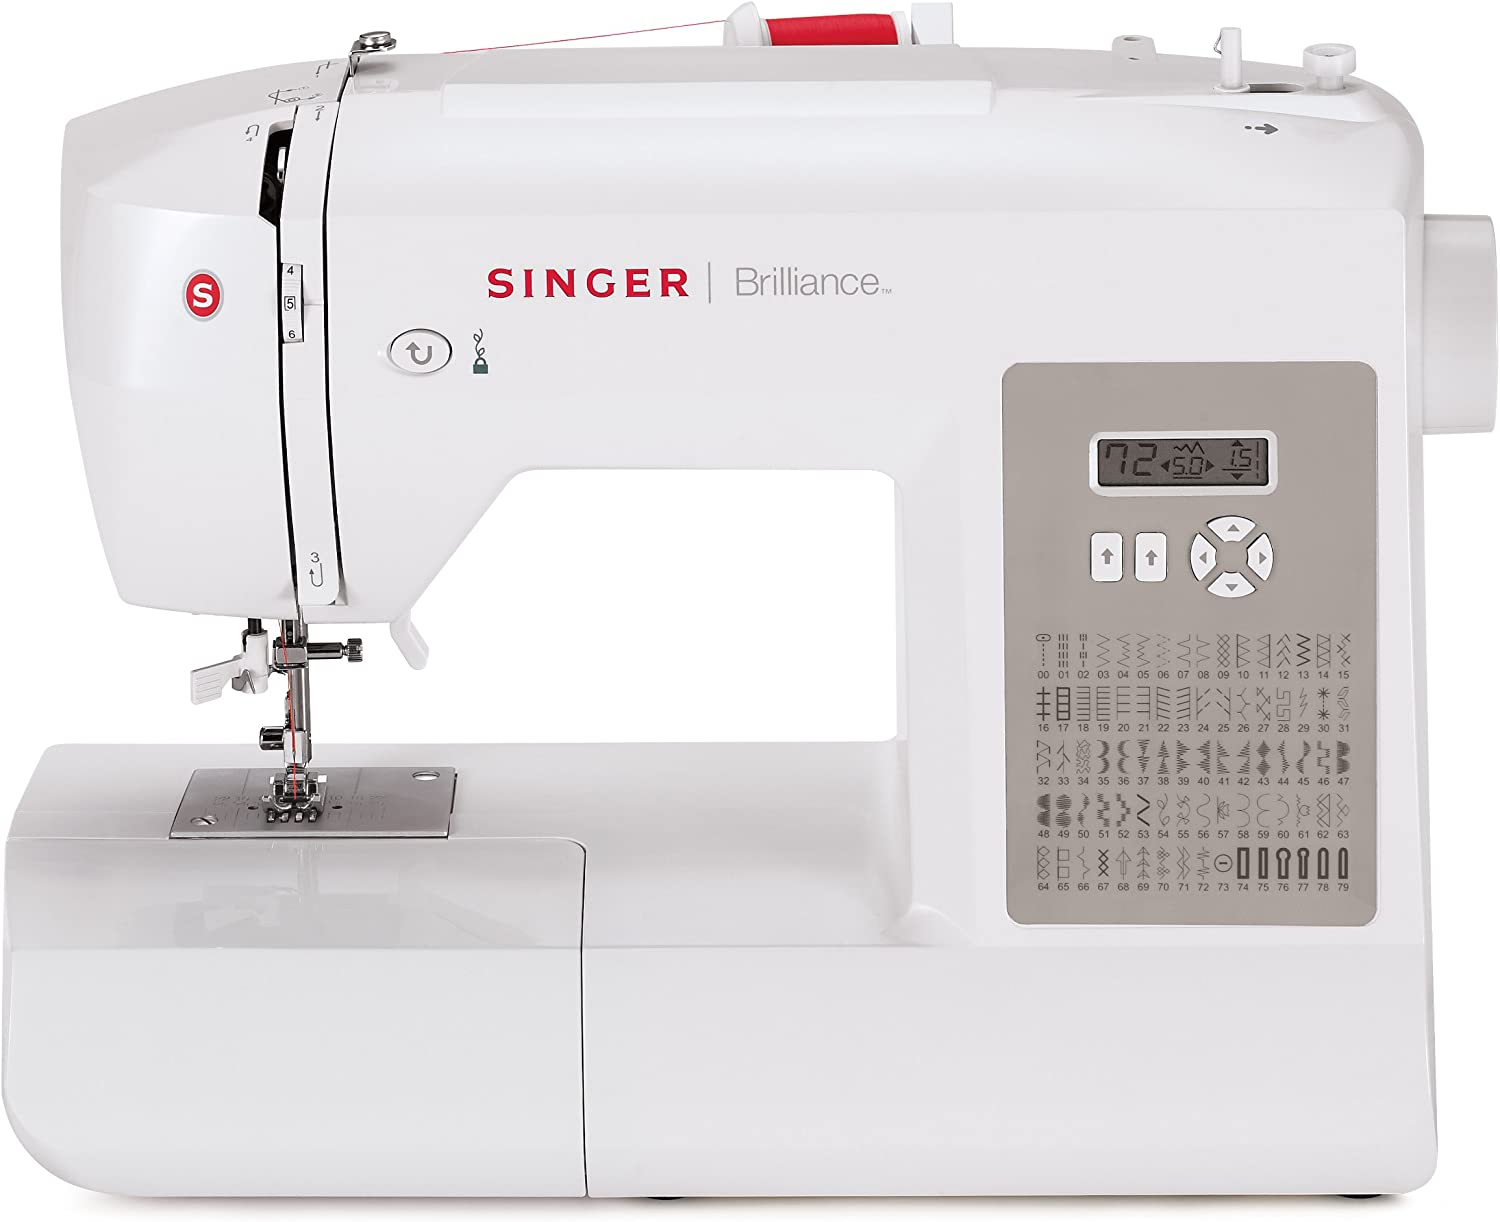 Singer Factory Serviced 6180 Brilliance máquina de Coser portátil ...